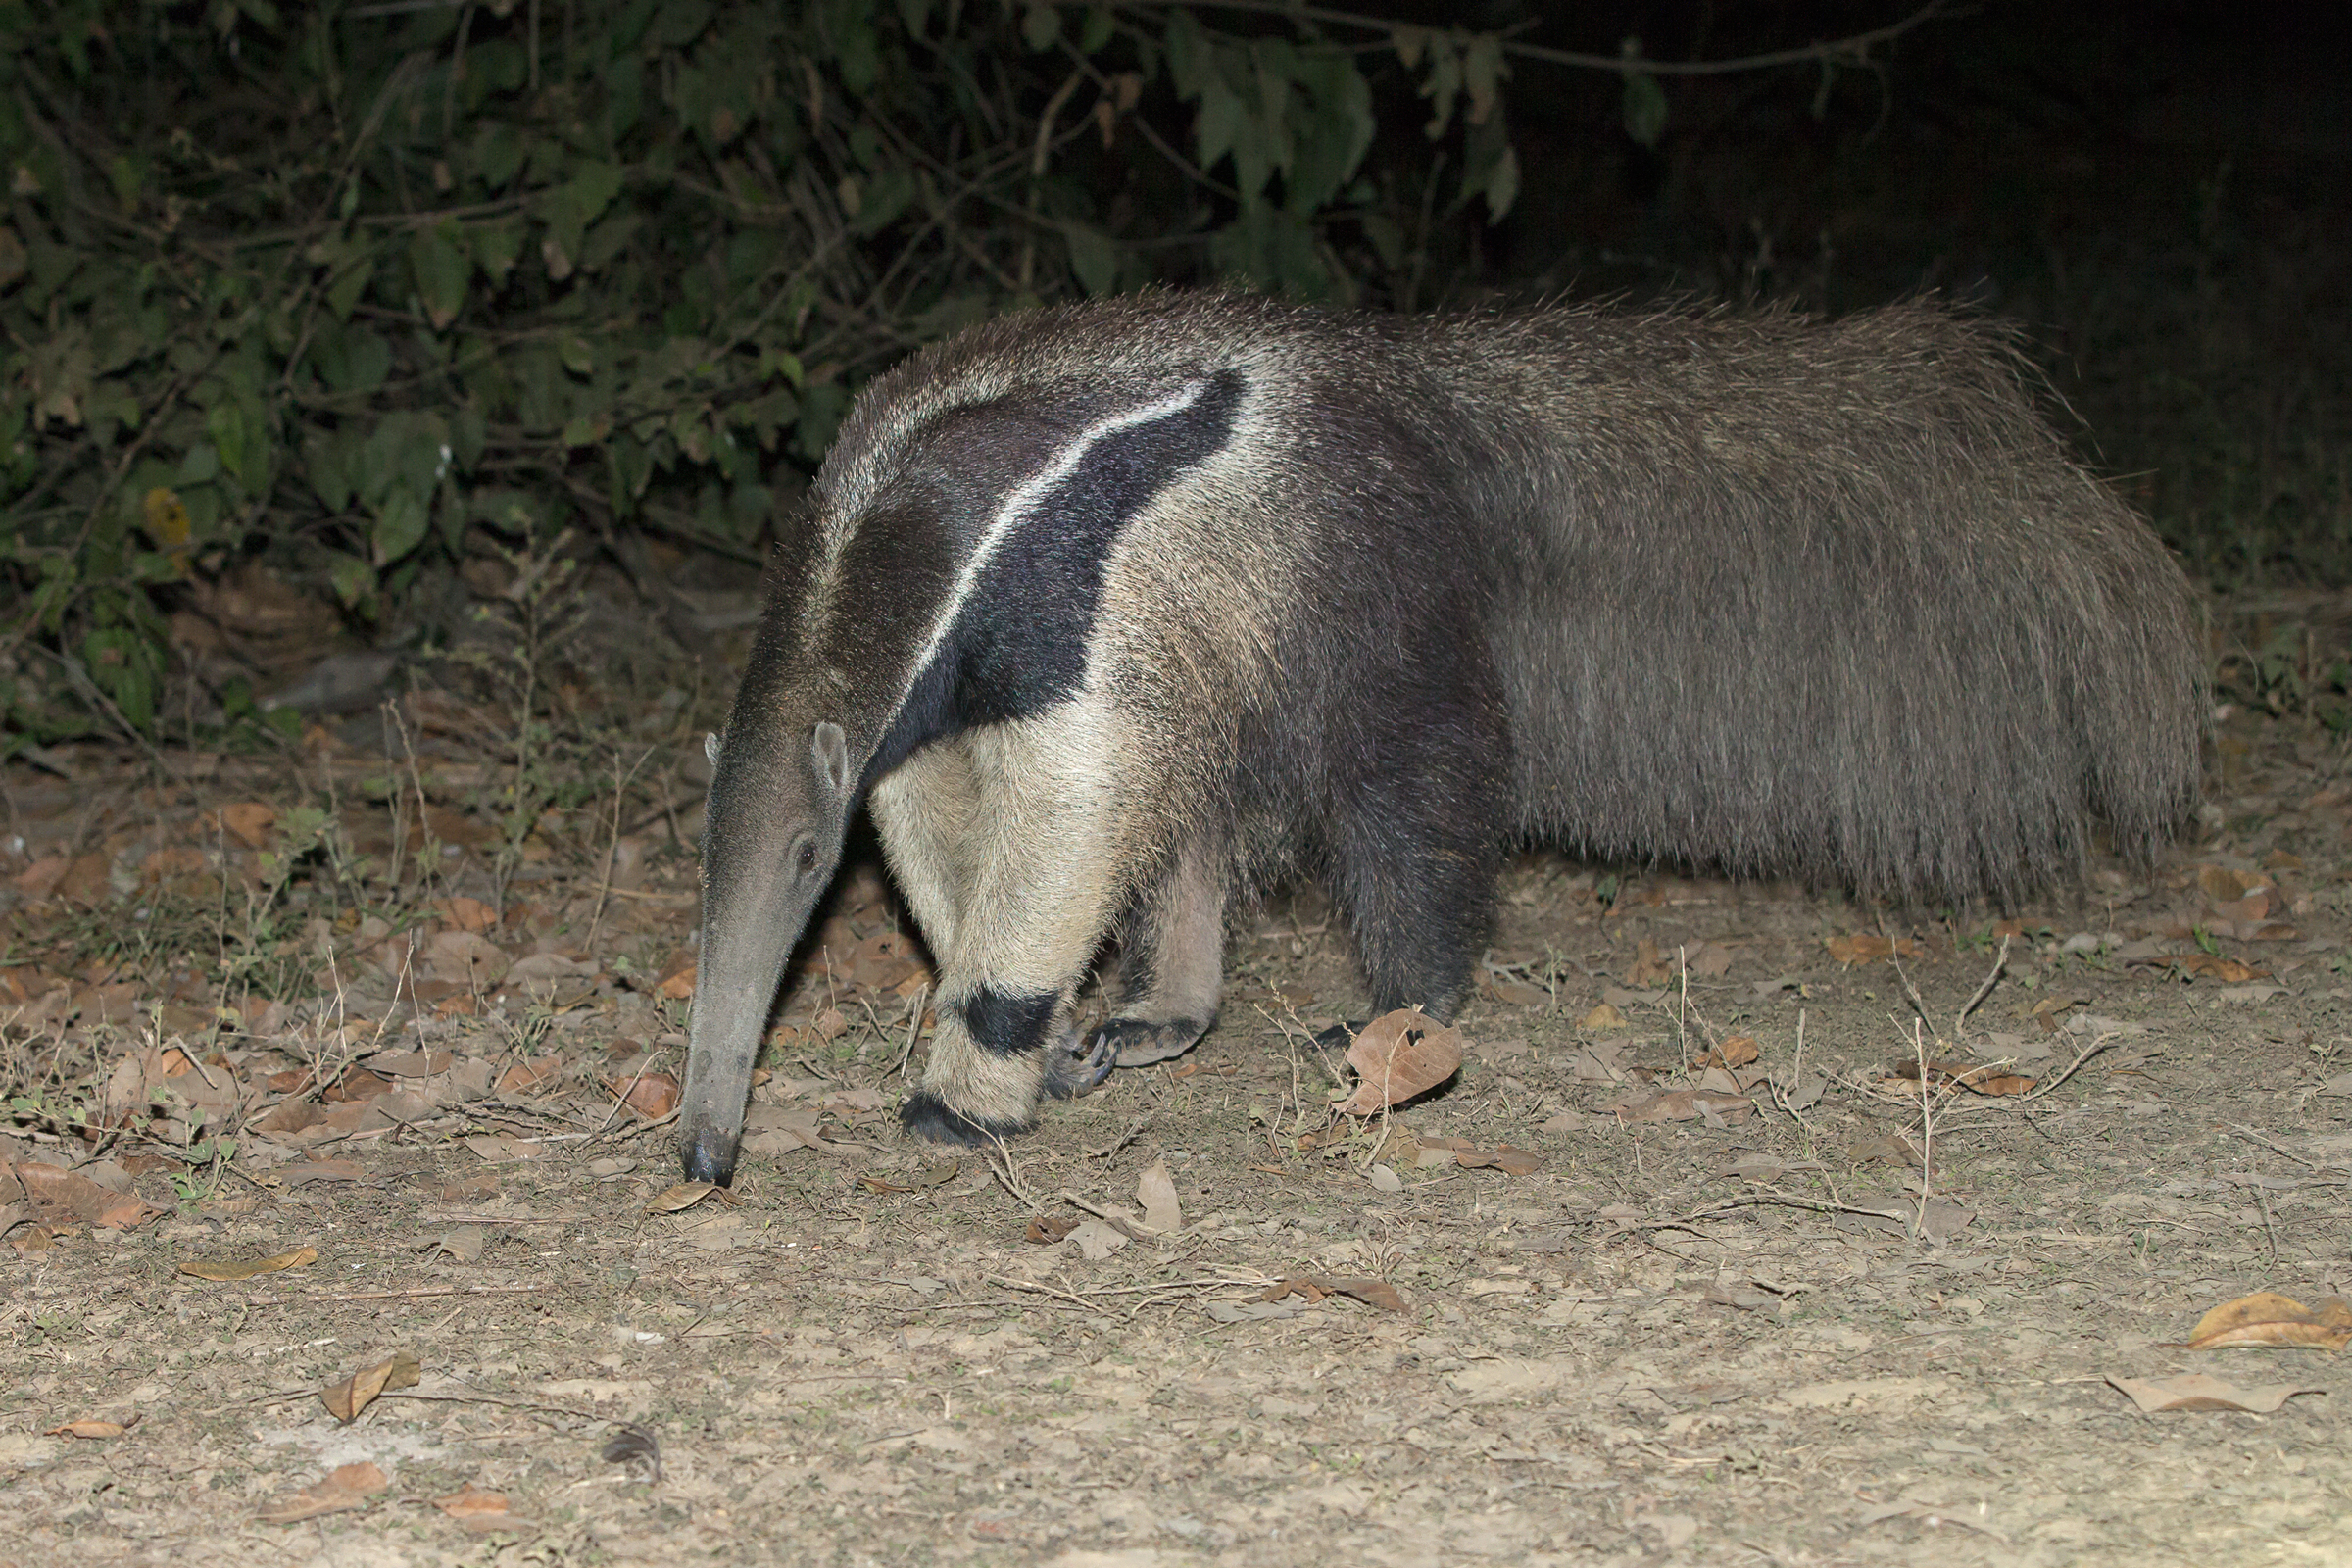 Giant Anteater, Pouso Alegre Lodge